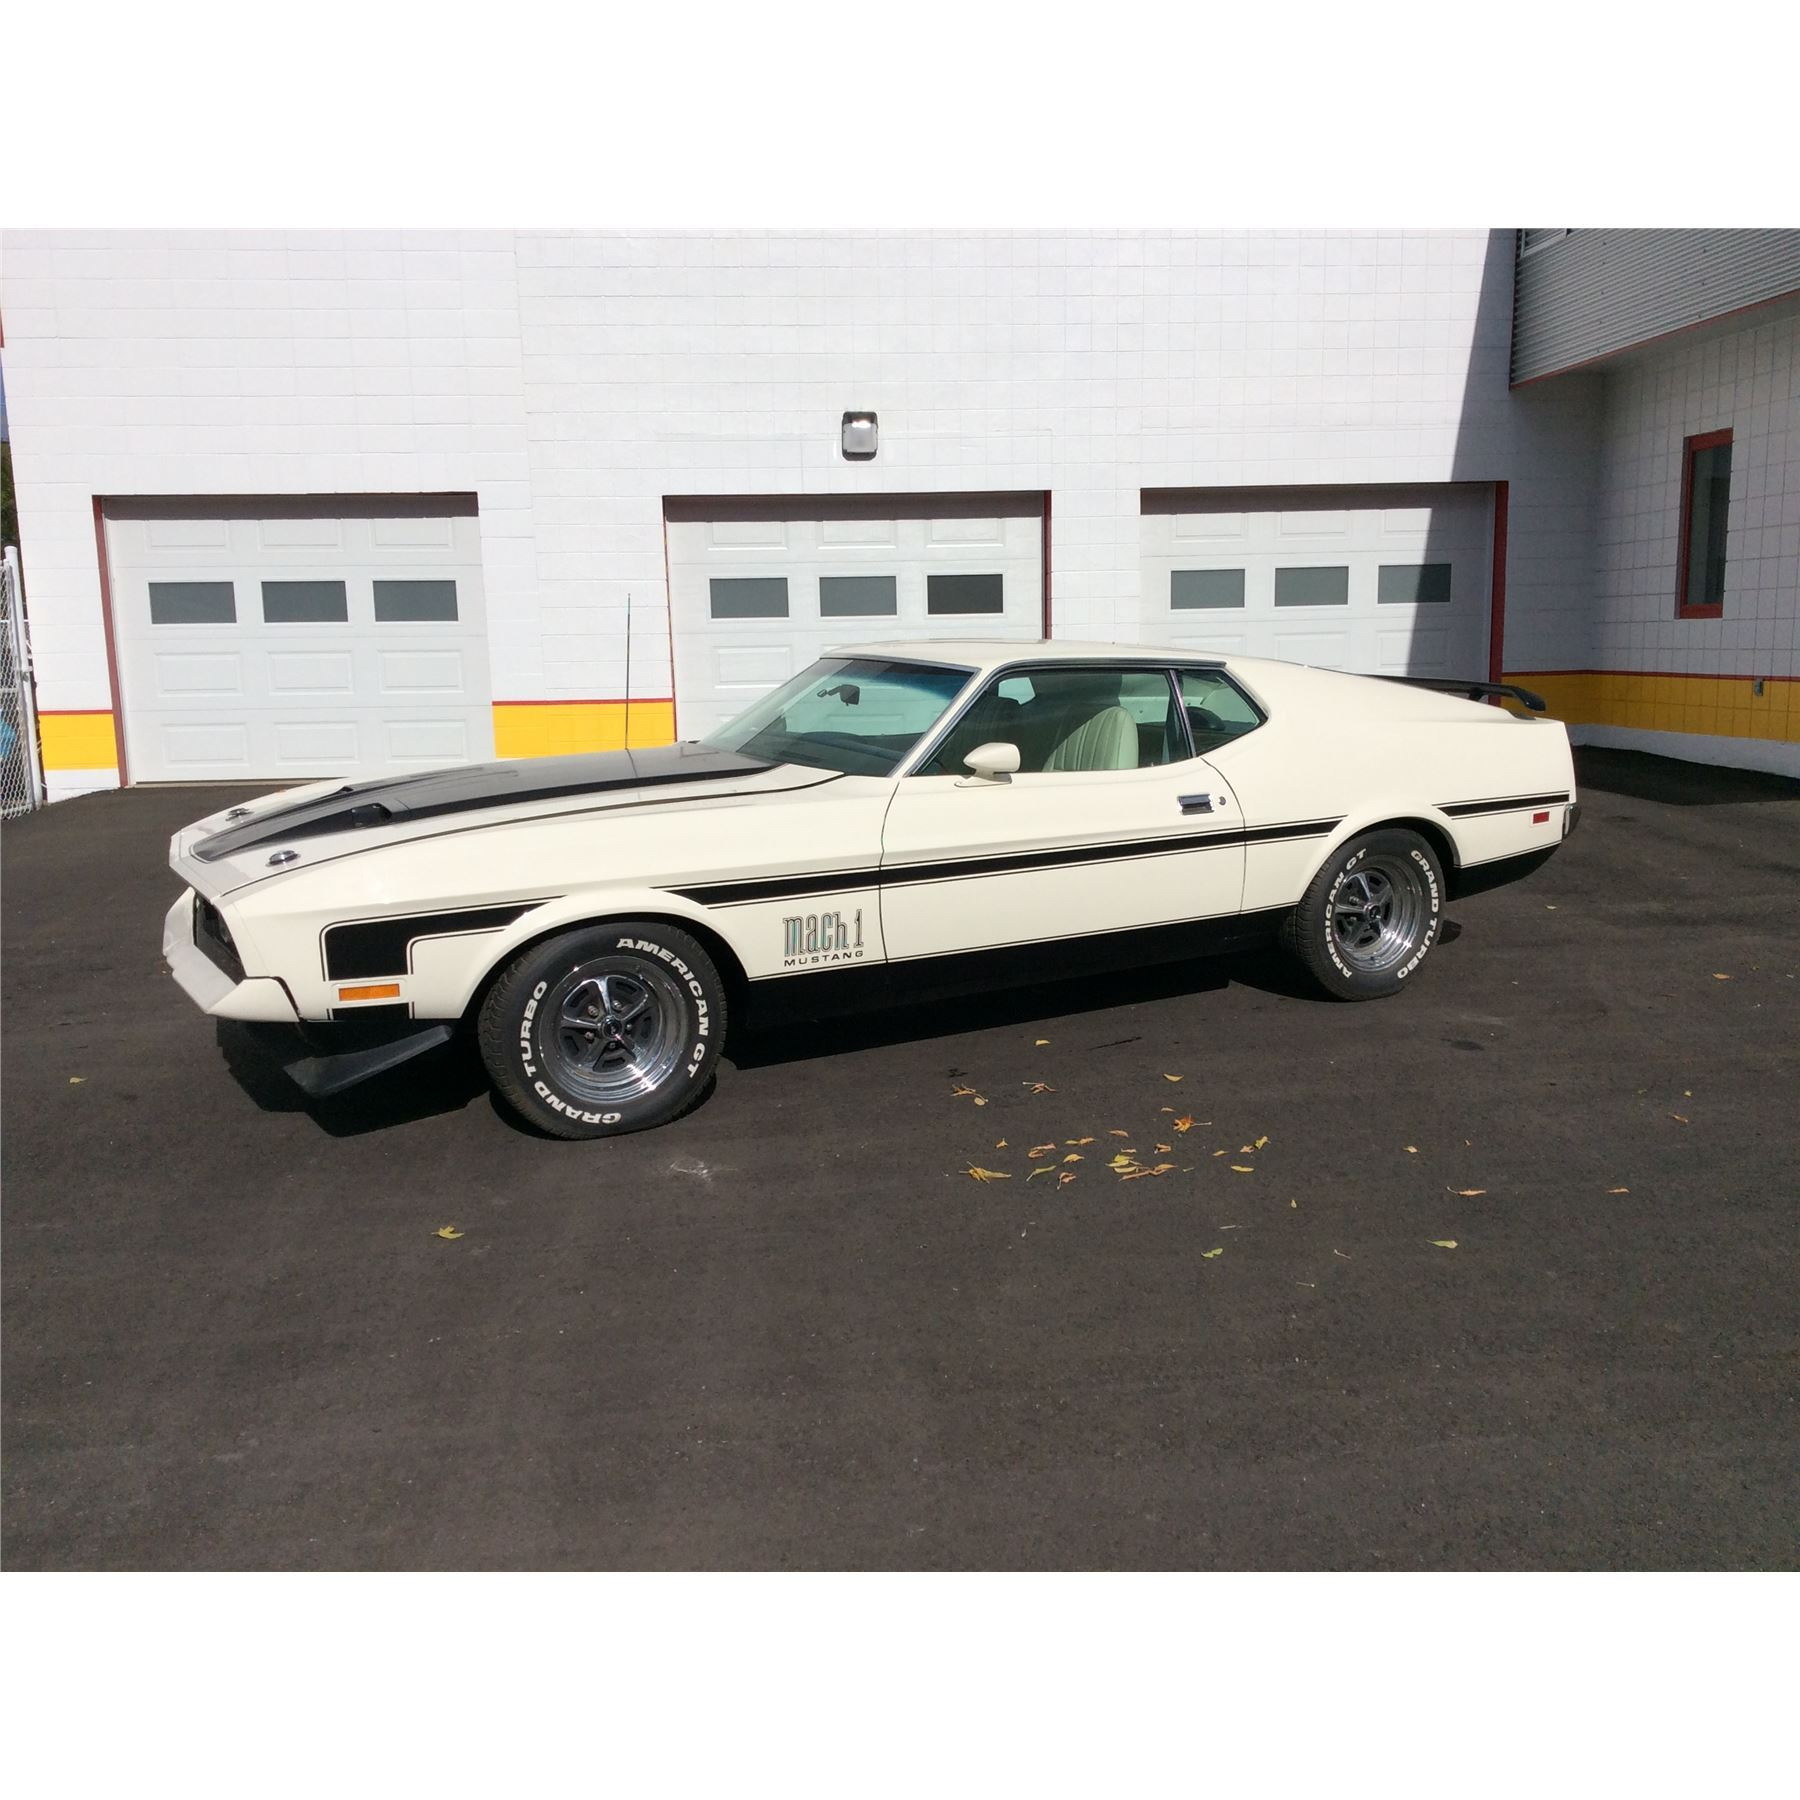 Image 1 1972 ford mustang mach i tribute